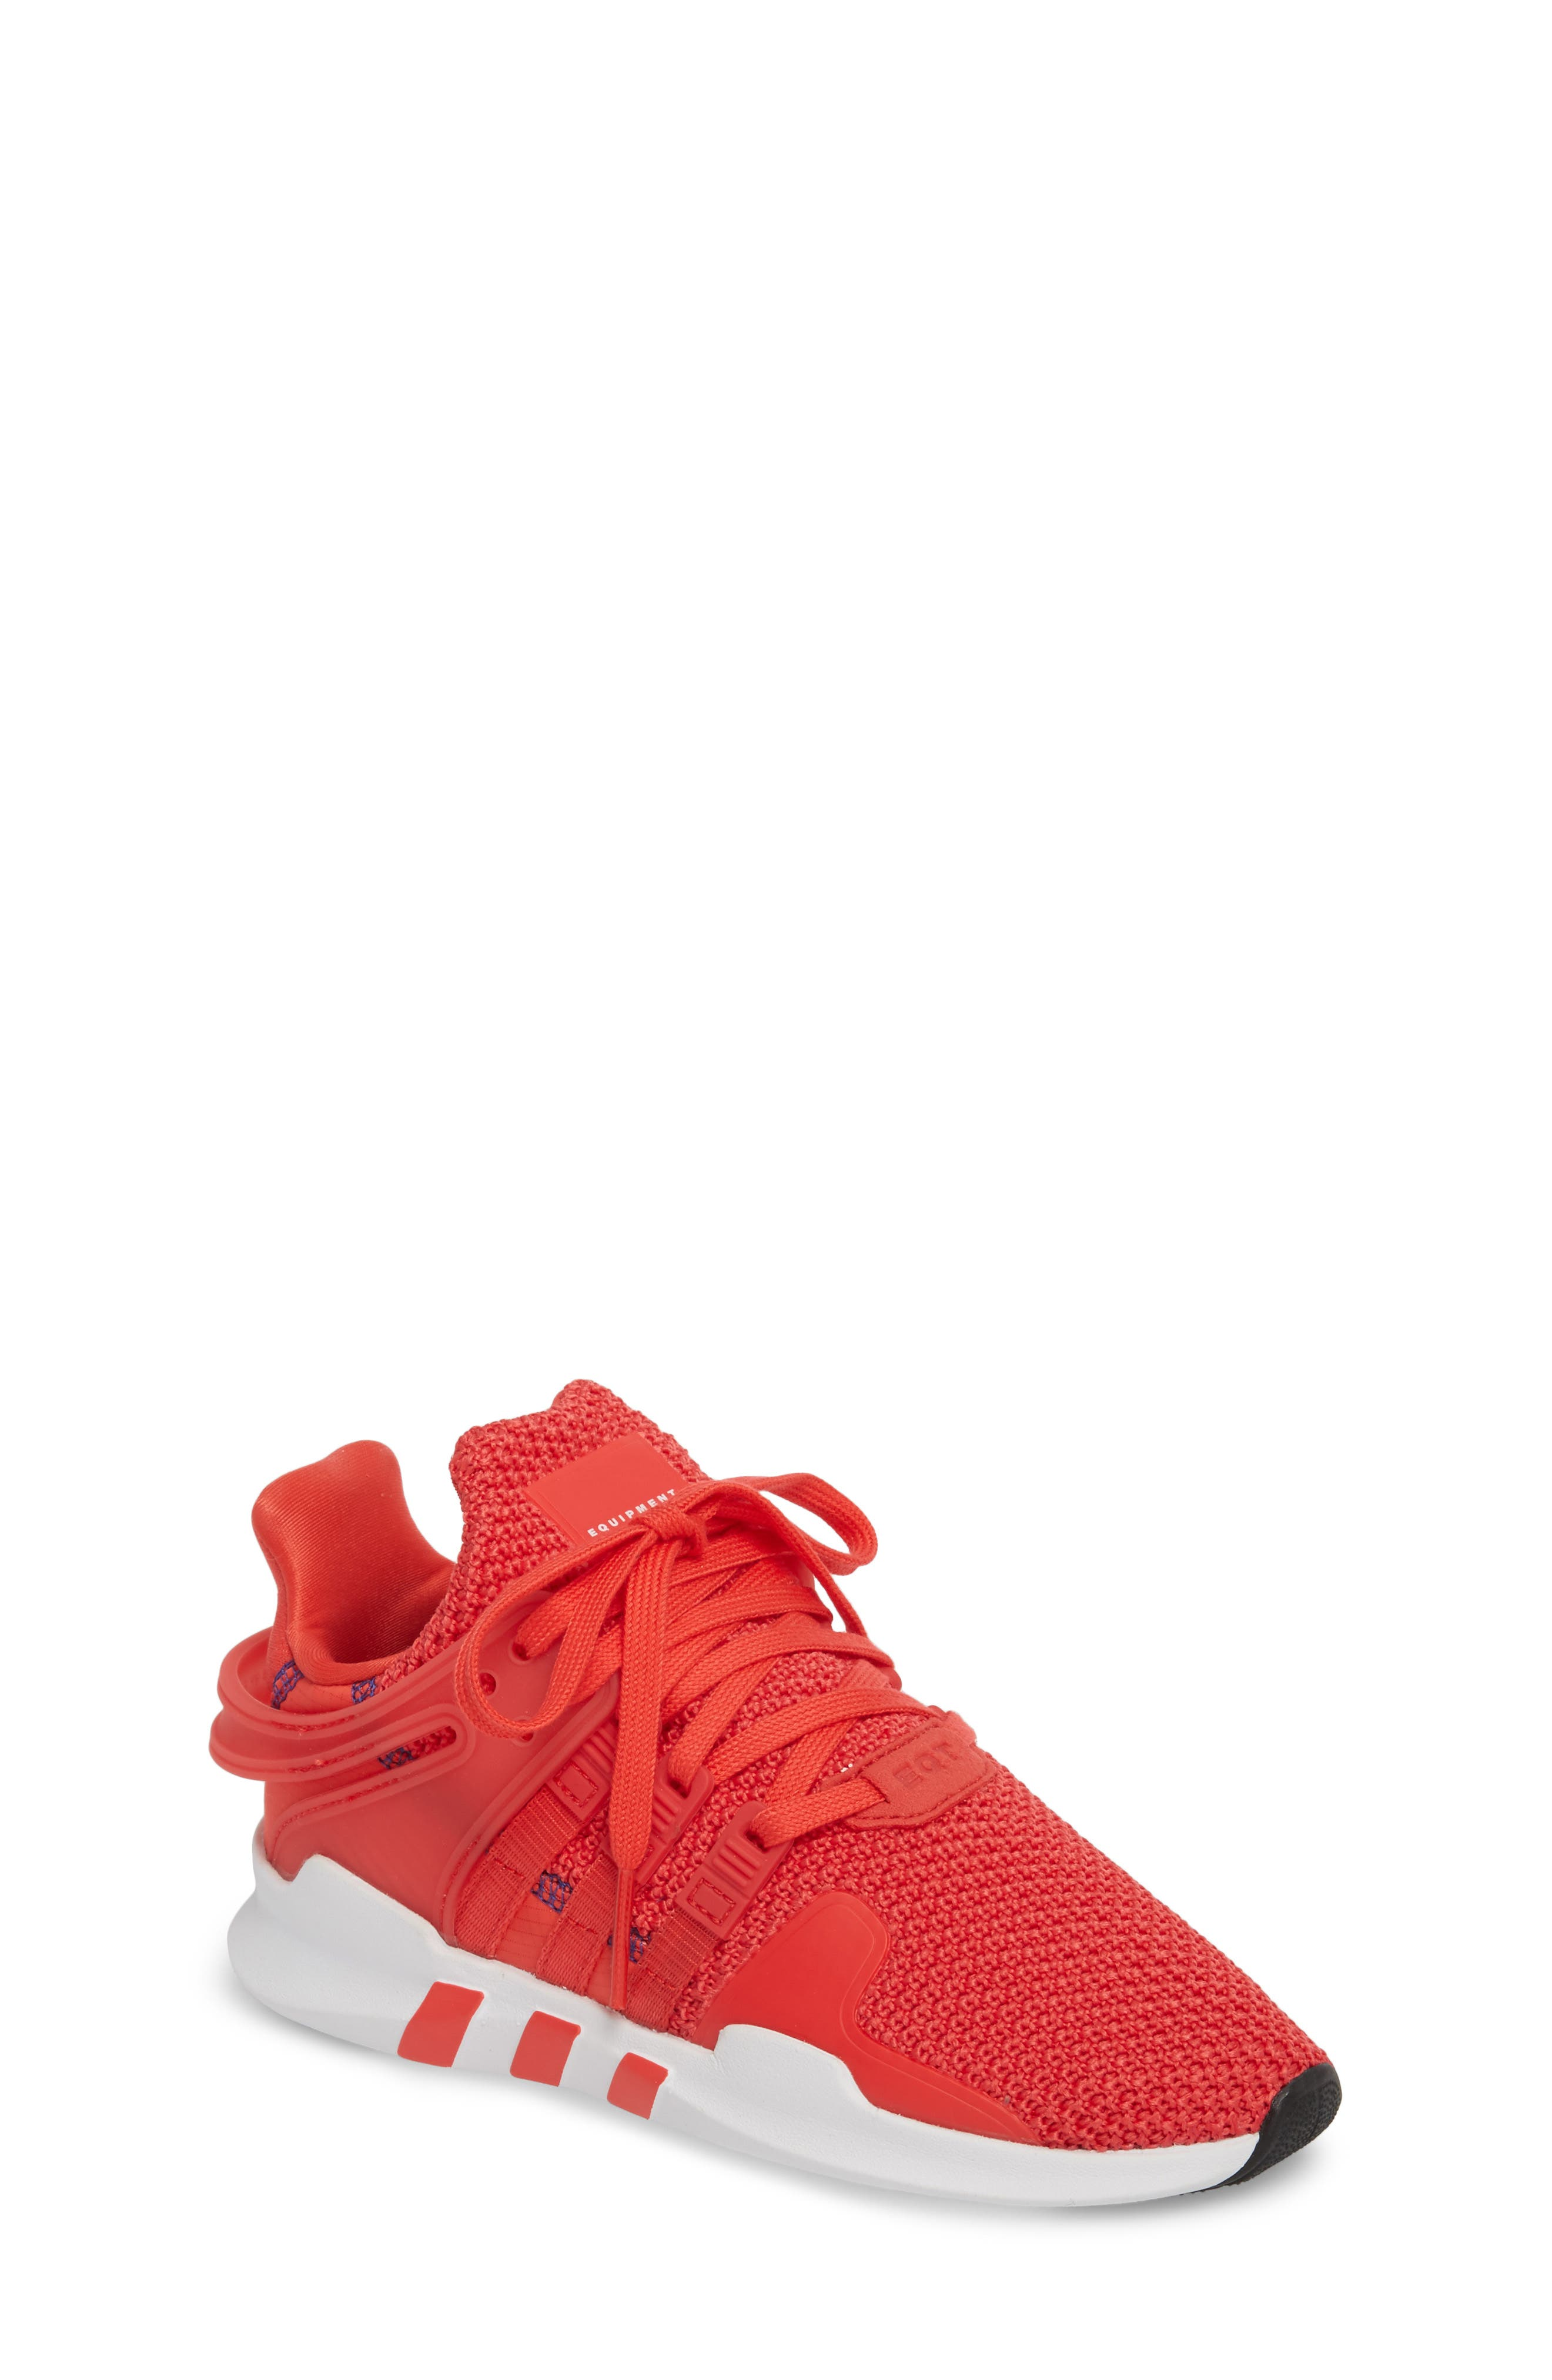 adidas EQT Support Adv Sneaker (Baby, Walker, Toddler, Little Kid & Big Kid)